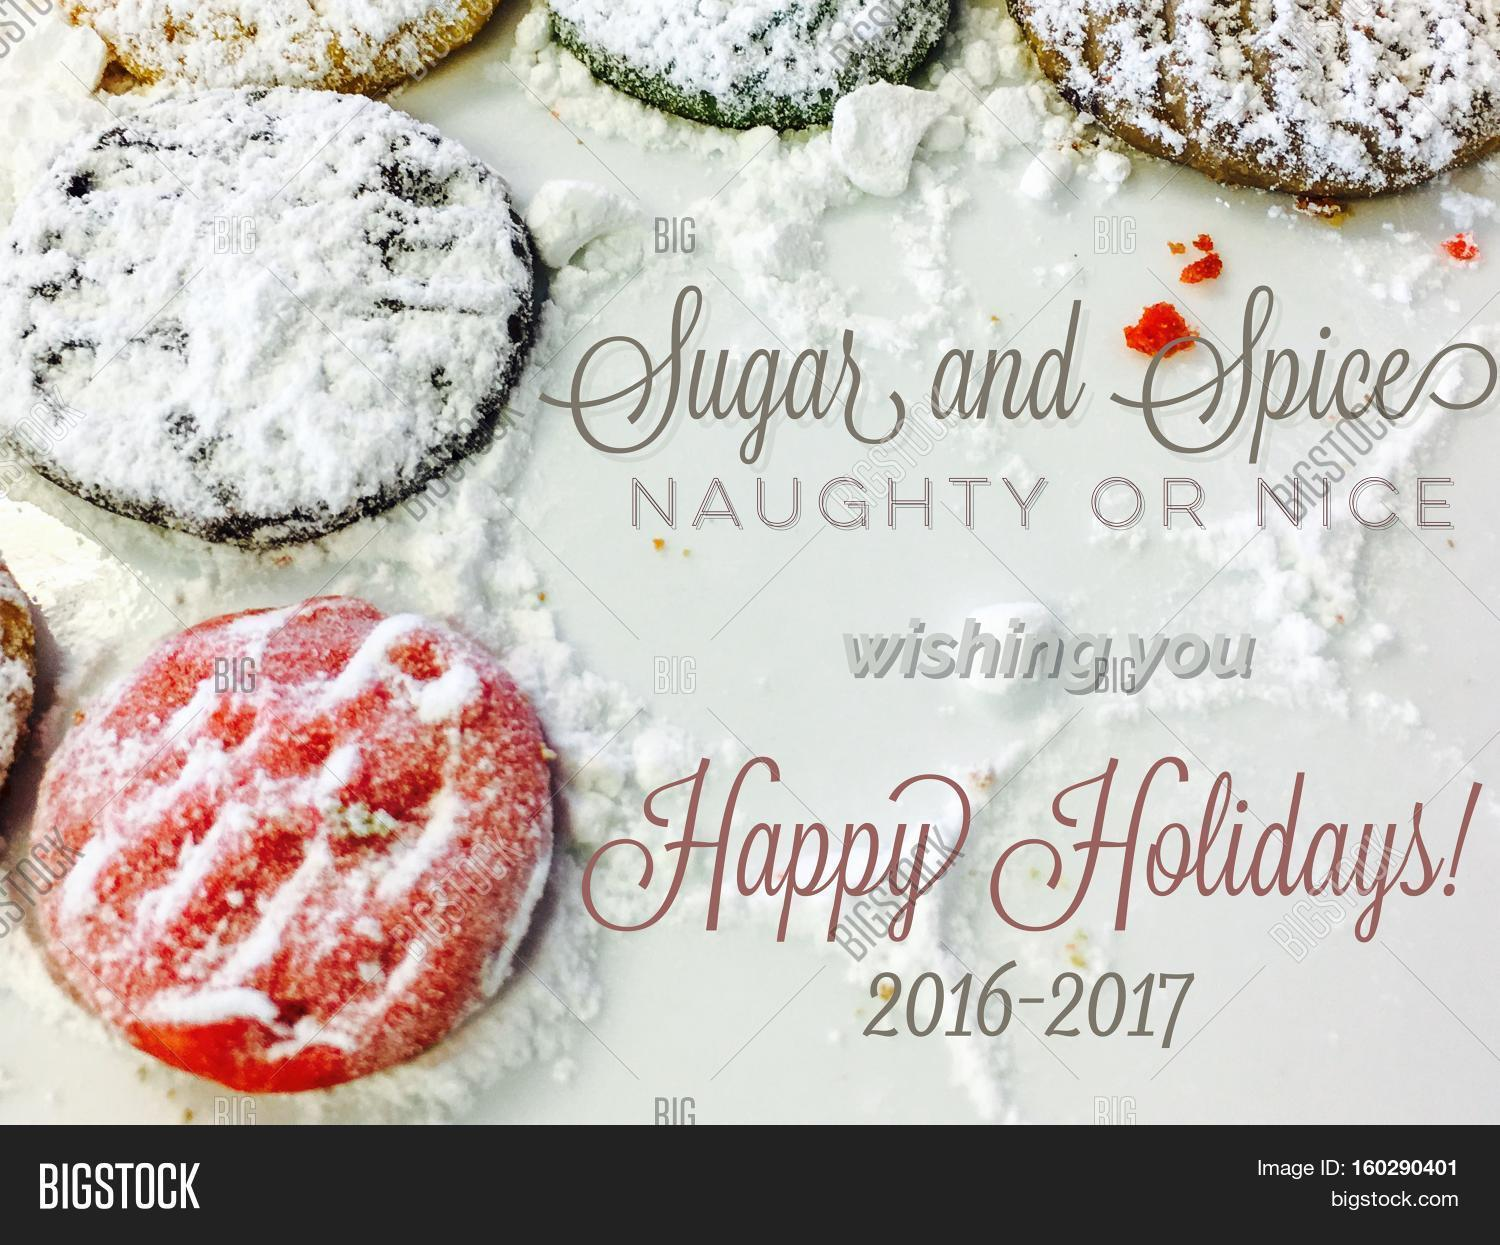 Fun Happy Holidays Image Photo Free Trial Bigstock